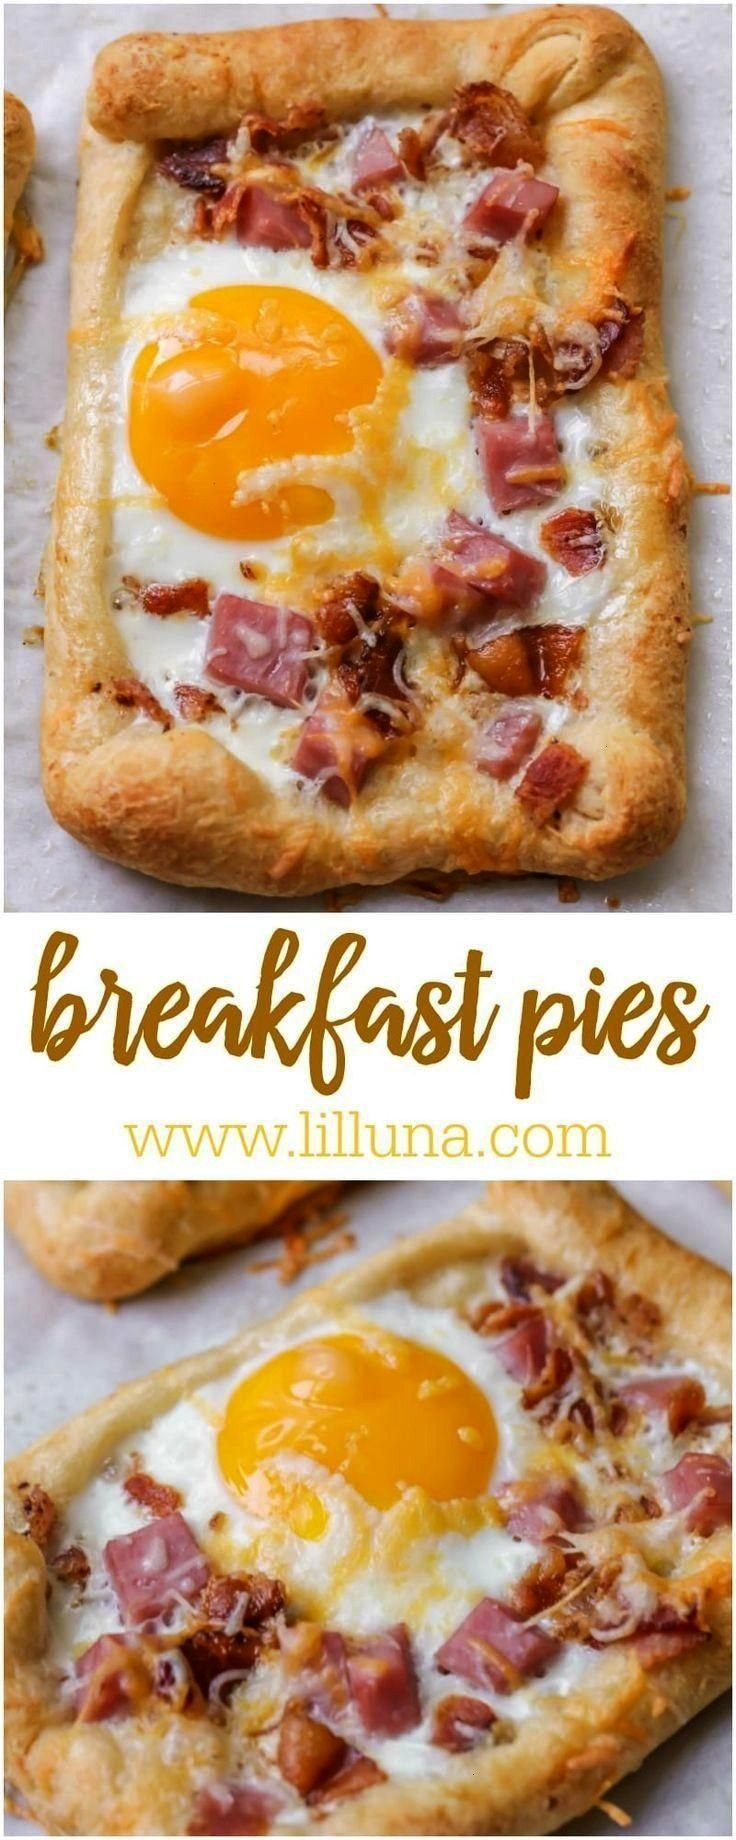 Breakfast Pies - Bake, Cook, Eat! - Easy Pizza Crescent Breakfast Pies  - Bake, Cook, Eat! -Crescen